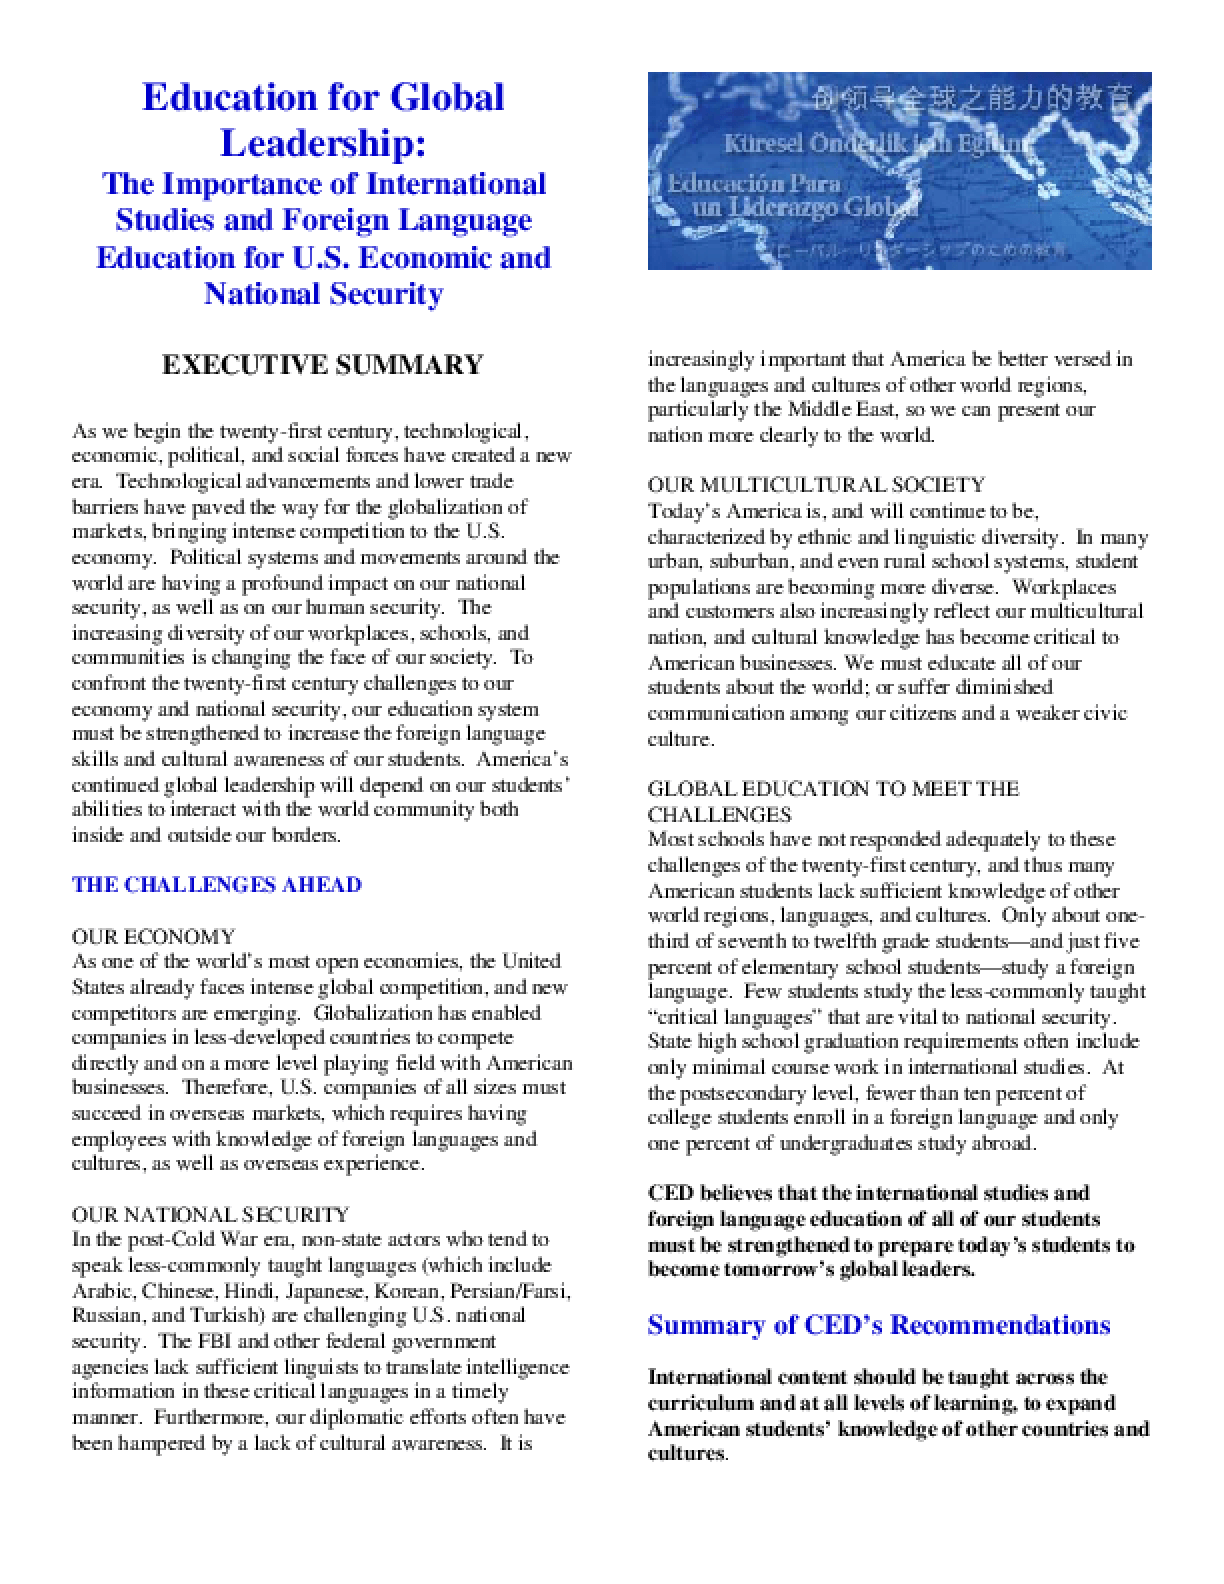 Education for Global Leadership: The Importance of International Studies and Foreign Language Education for U.S. Economic and National Security - Executive Summary